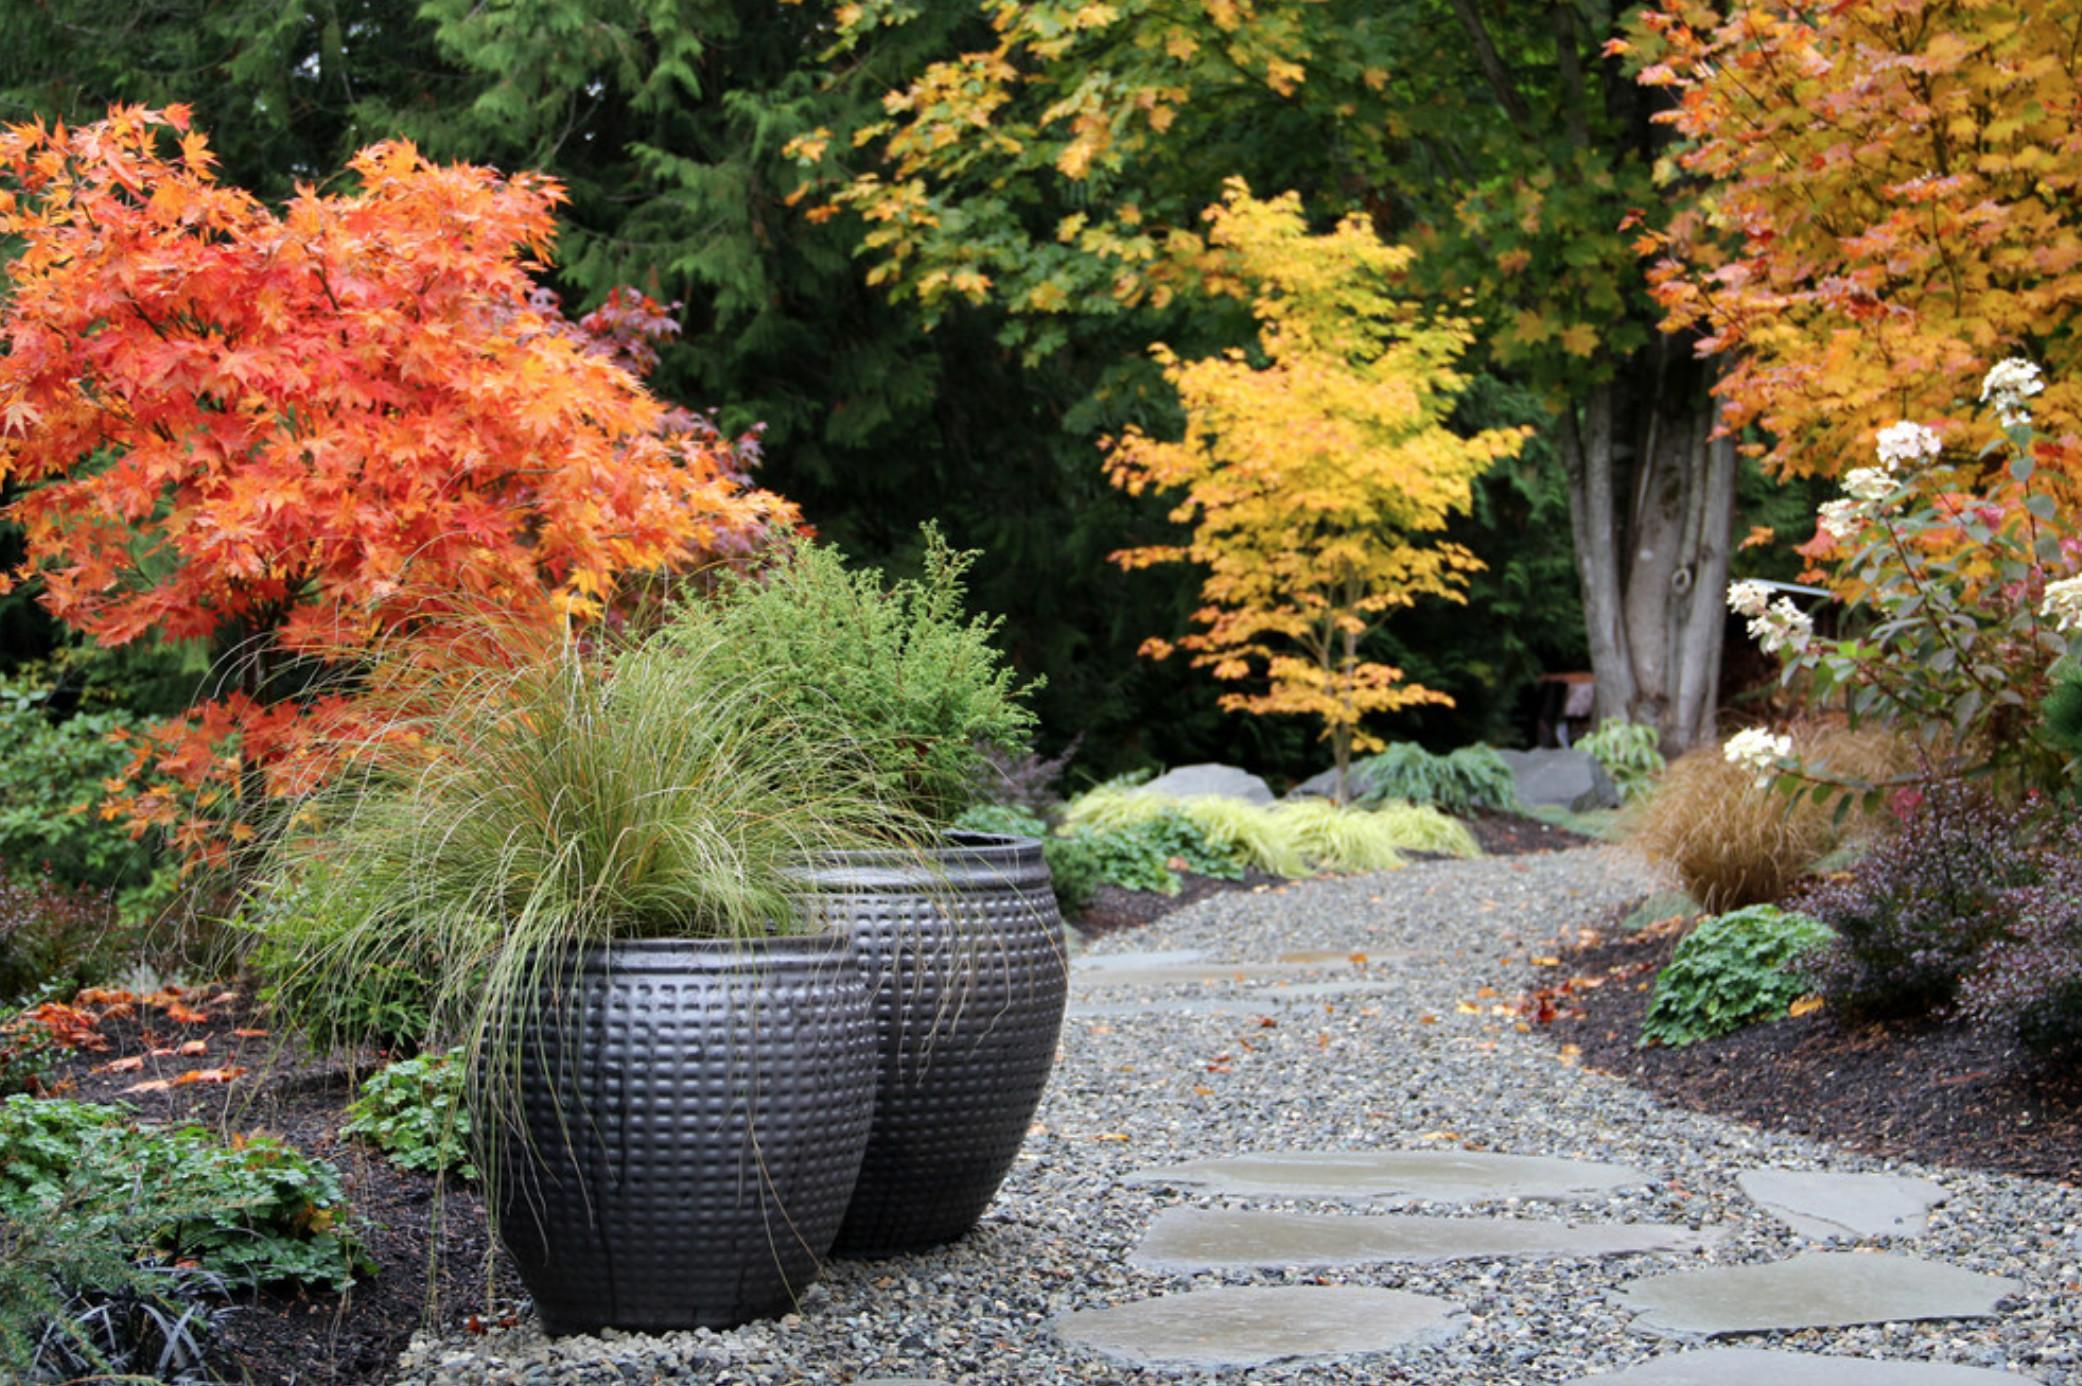 Creating Stunning Fall Garden Your Client